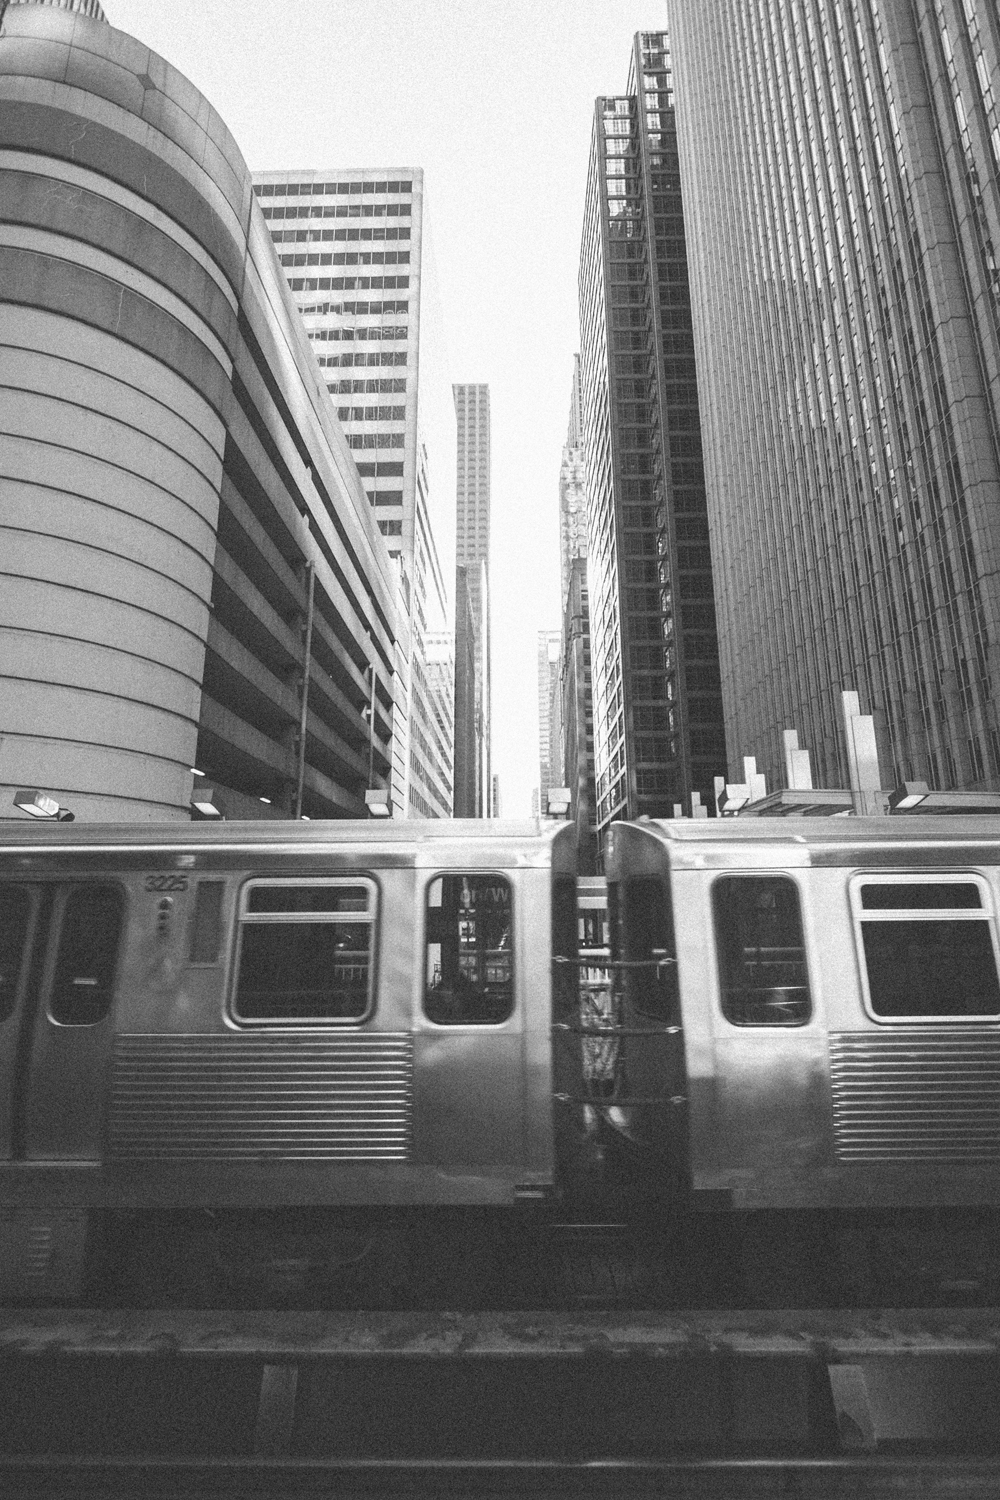 154Chicago Transit Authority L Train068